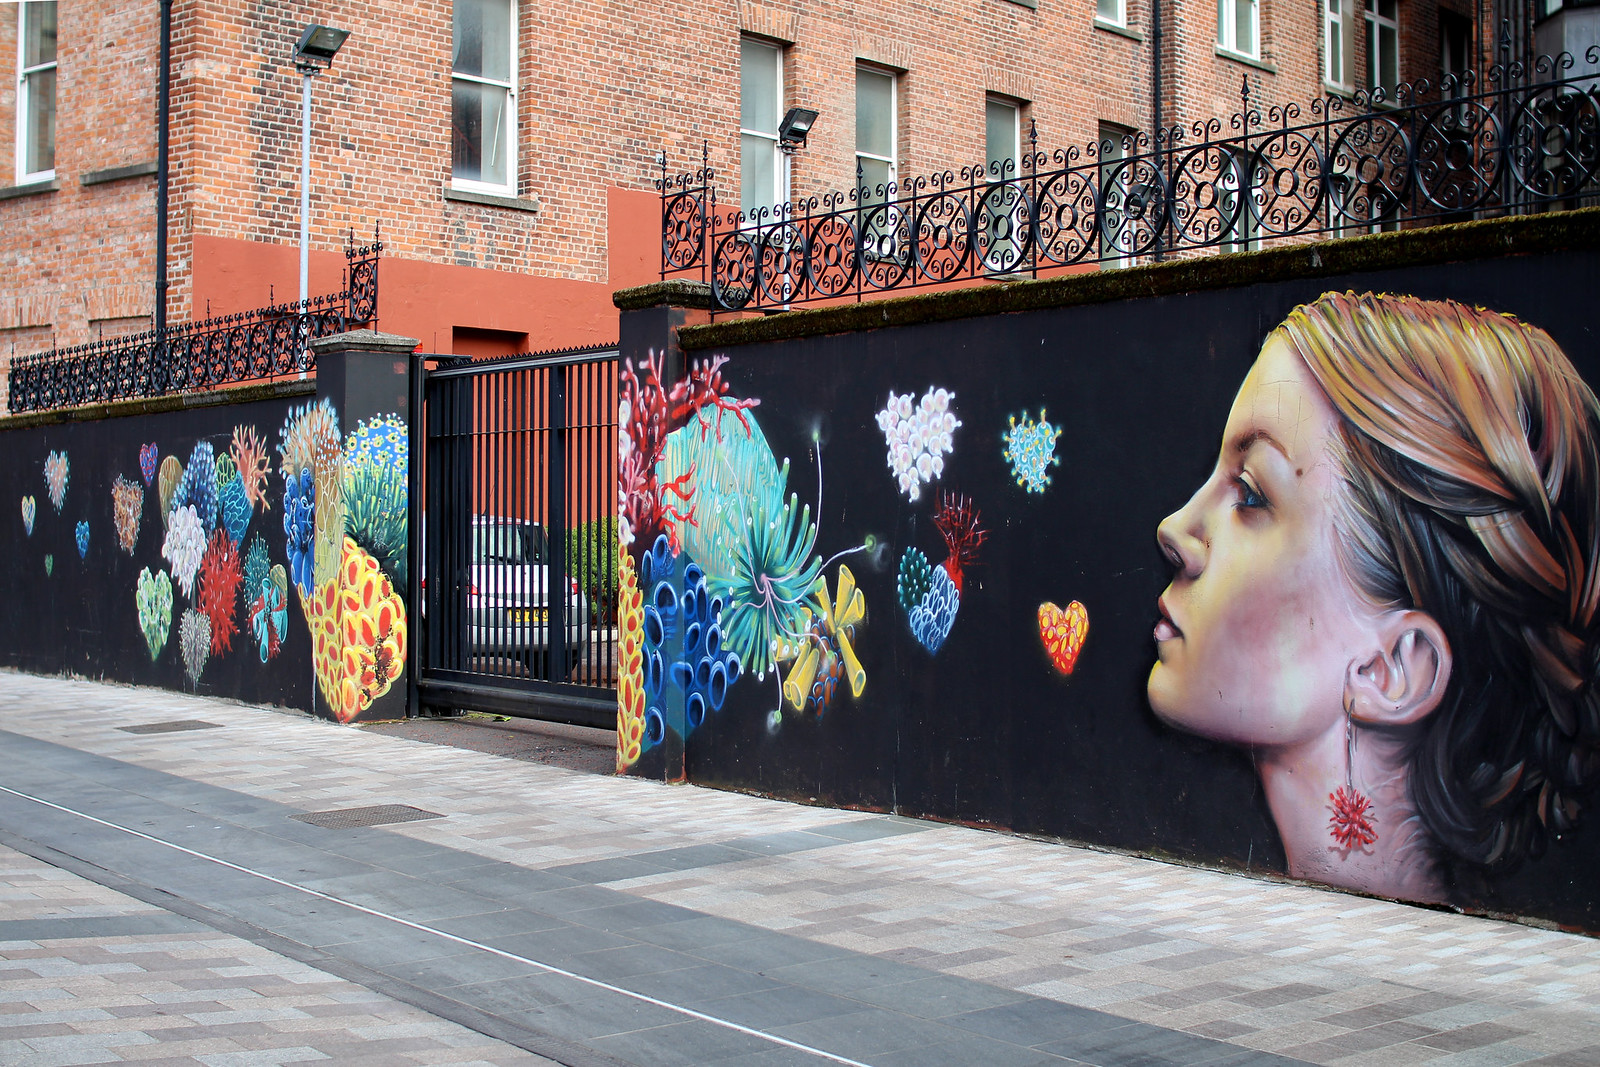 Street art murals Belfast 48 hour guide travel blogger UK Northern Ireland